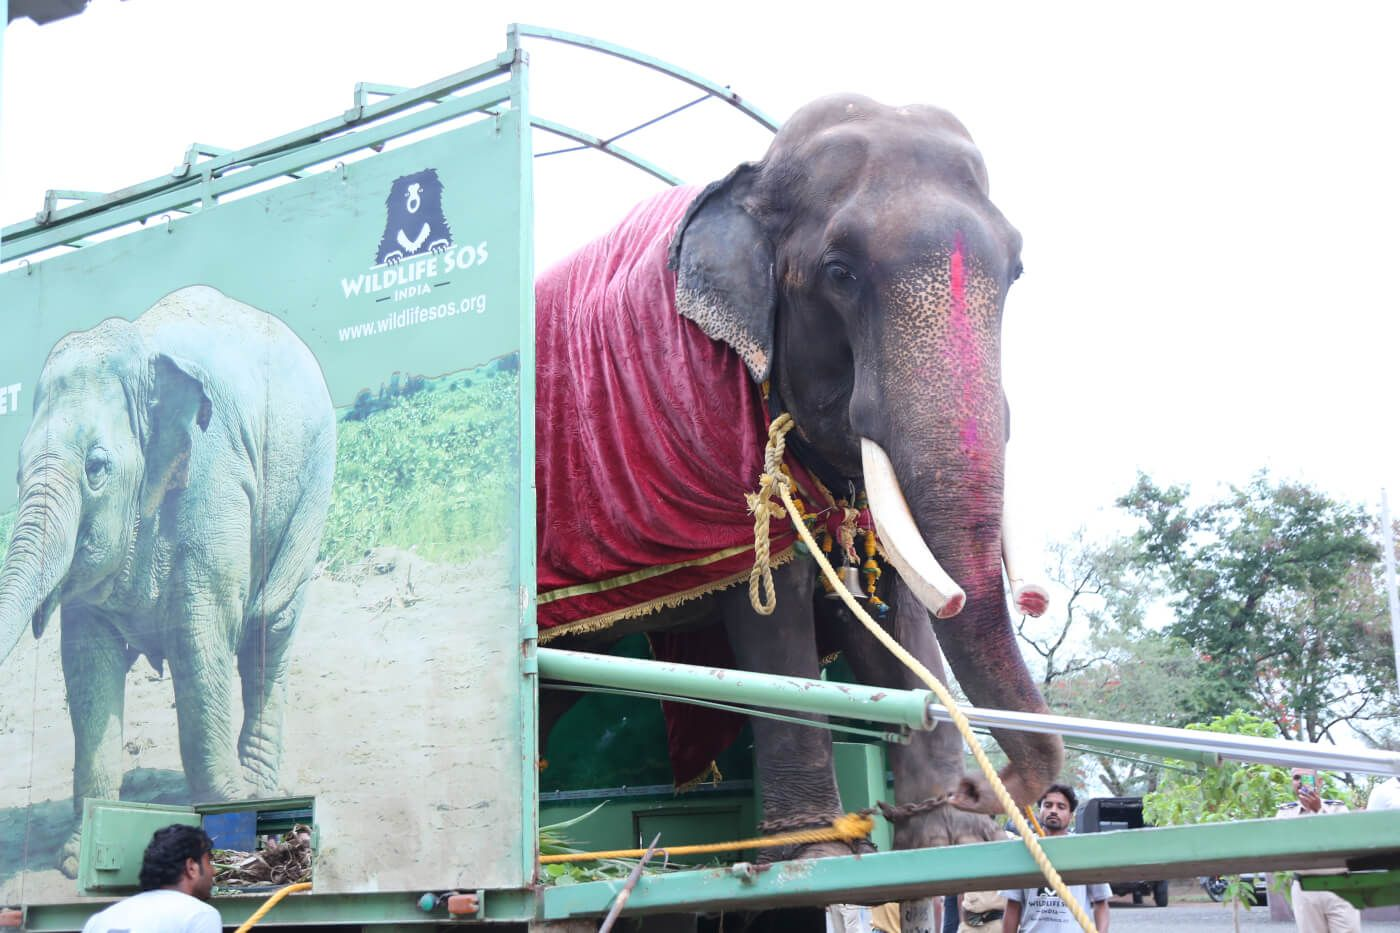 freeed elphant behind 50 years